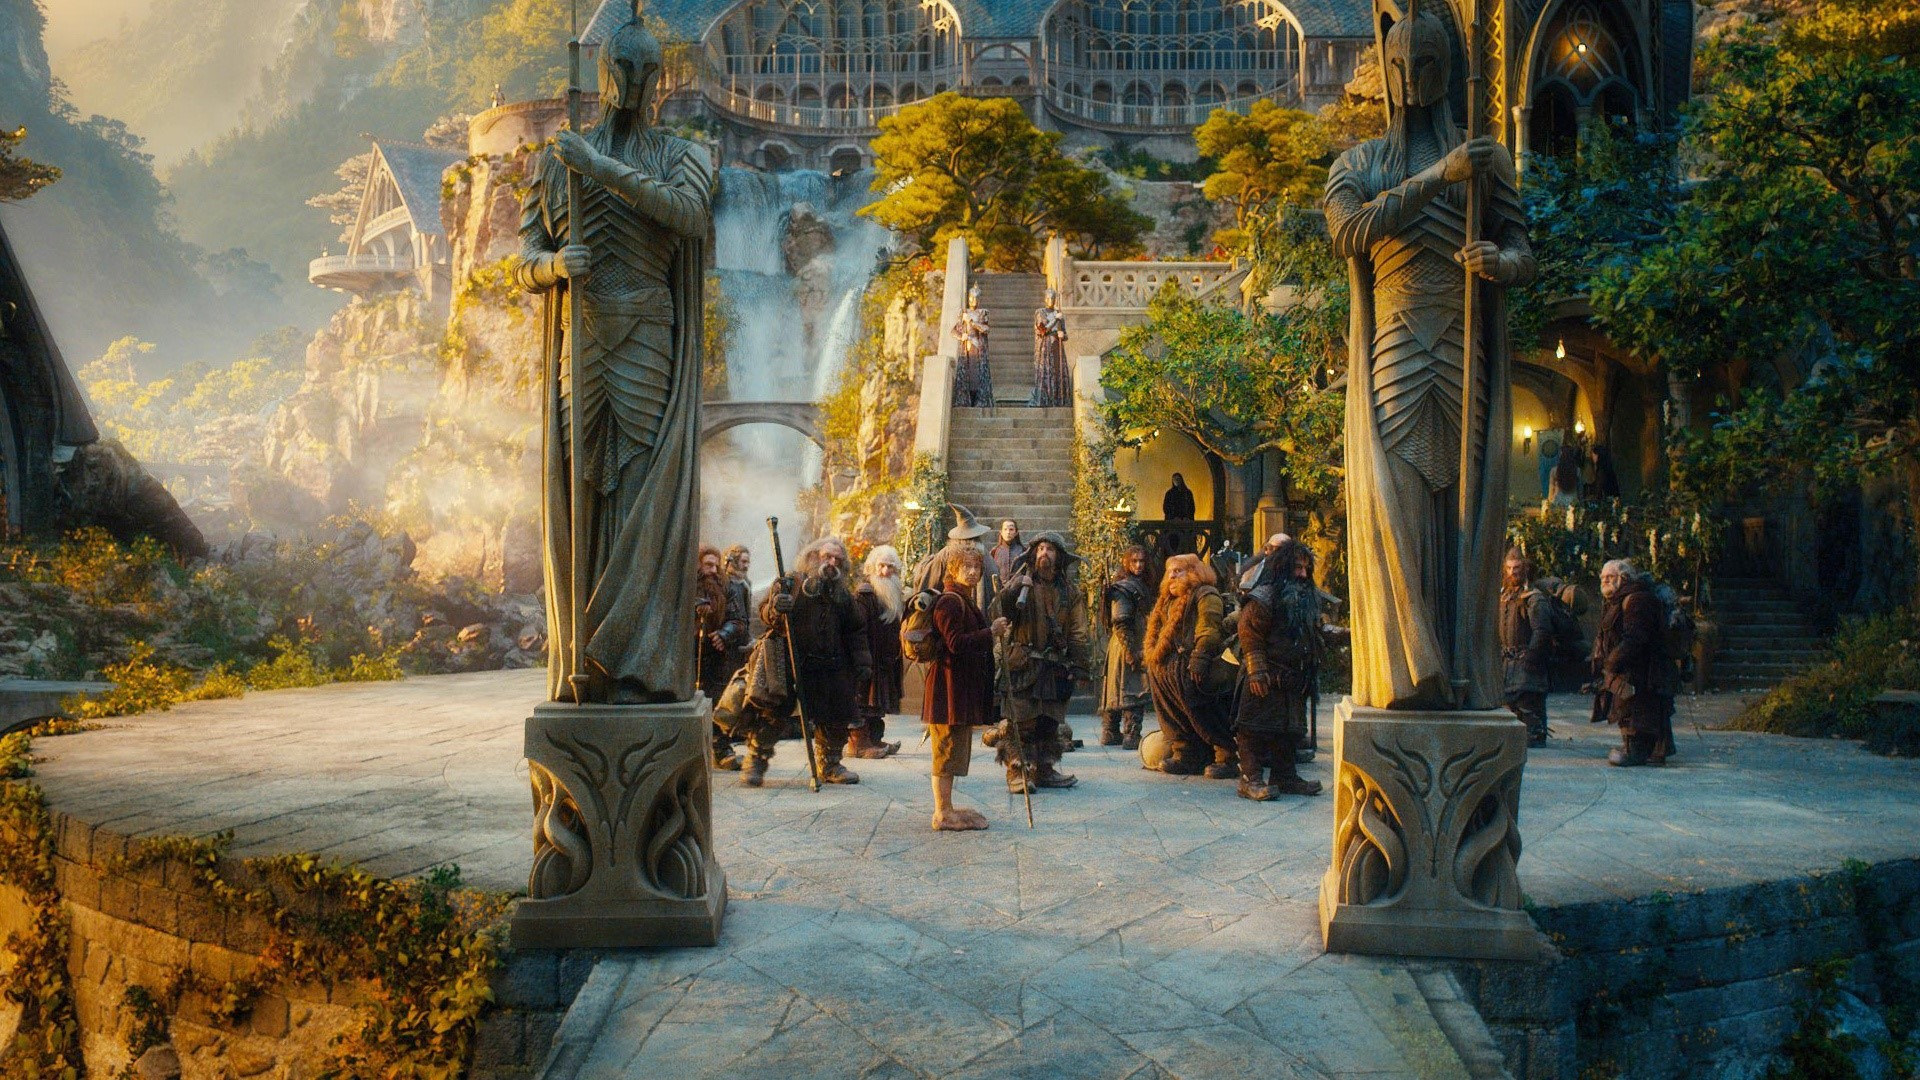 Fondos de pantalla The hobbit An unexpected Journey